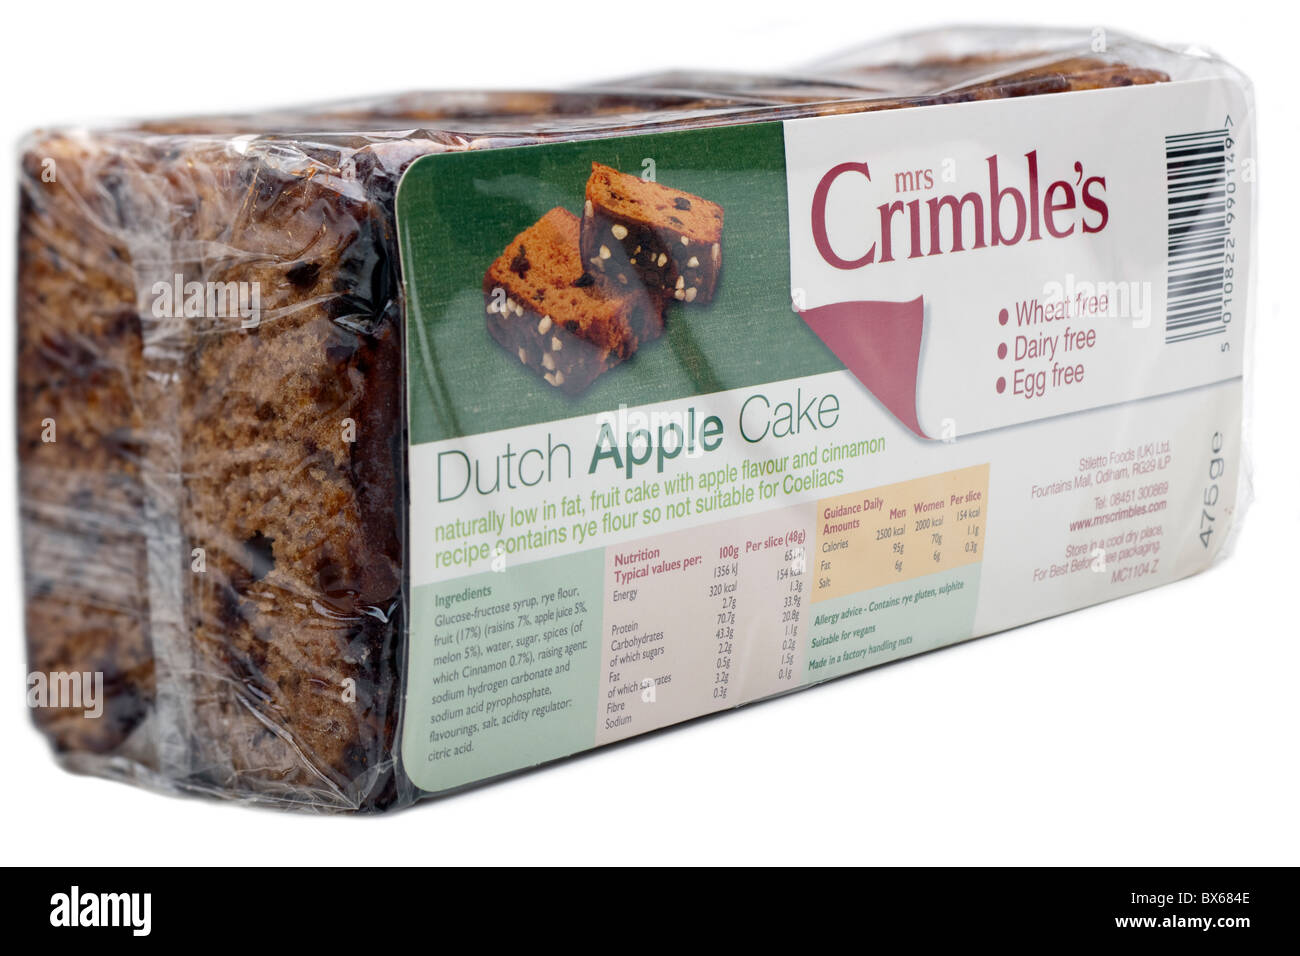 Packet of Mrs Crimble's wheat dairy and egg free Dutch apple cake Stock Photo